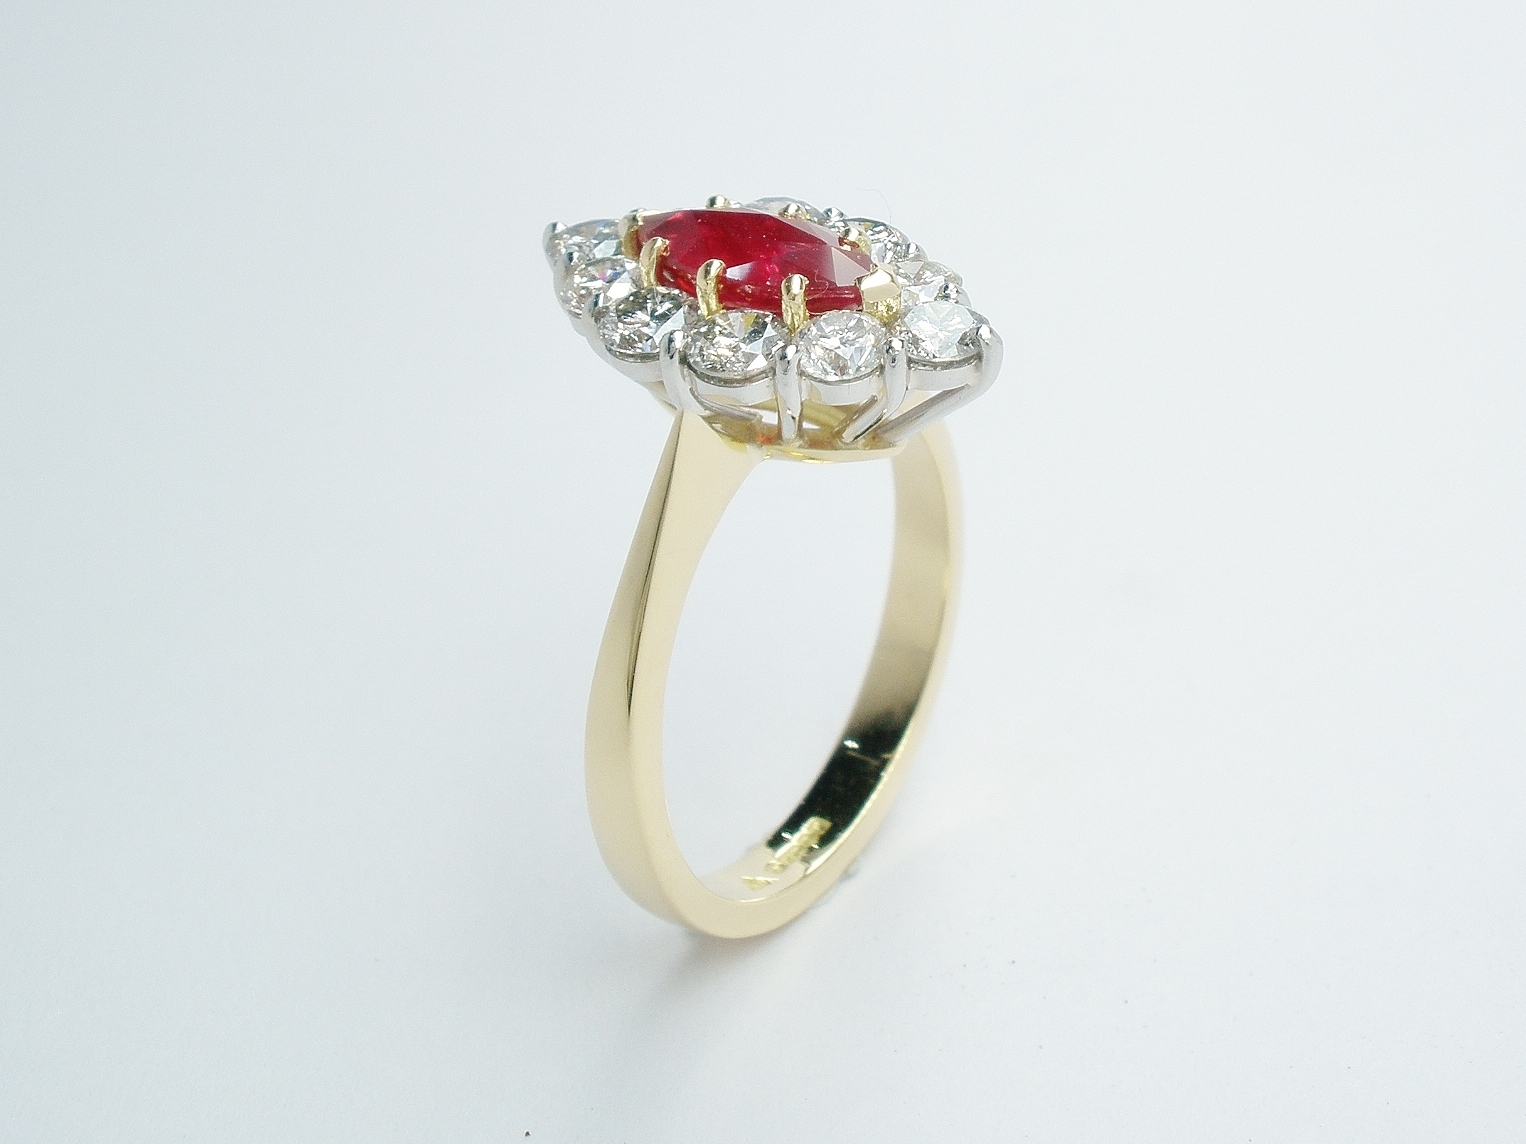 Marquise ruby and round brilliant cut diamond cluster ring mounted in 18ct. yellow gold and platinum.